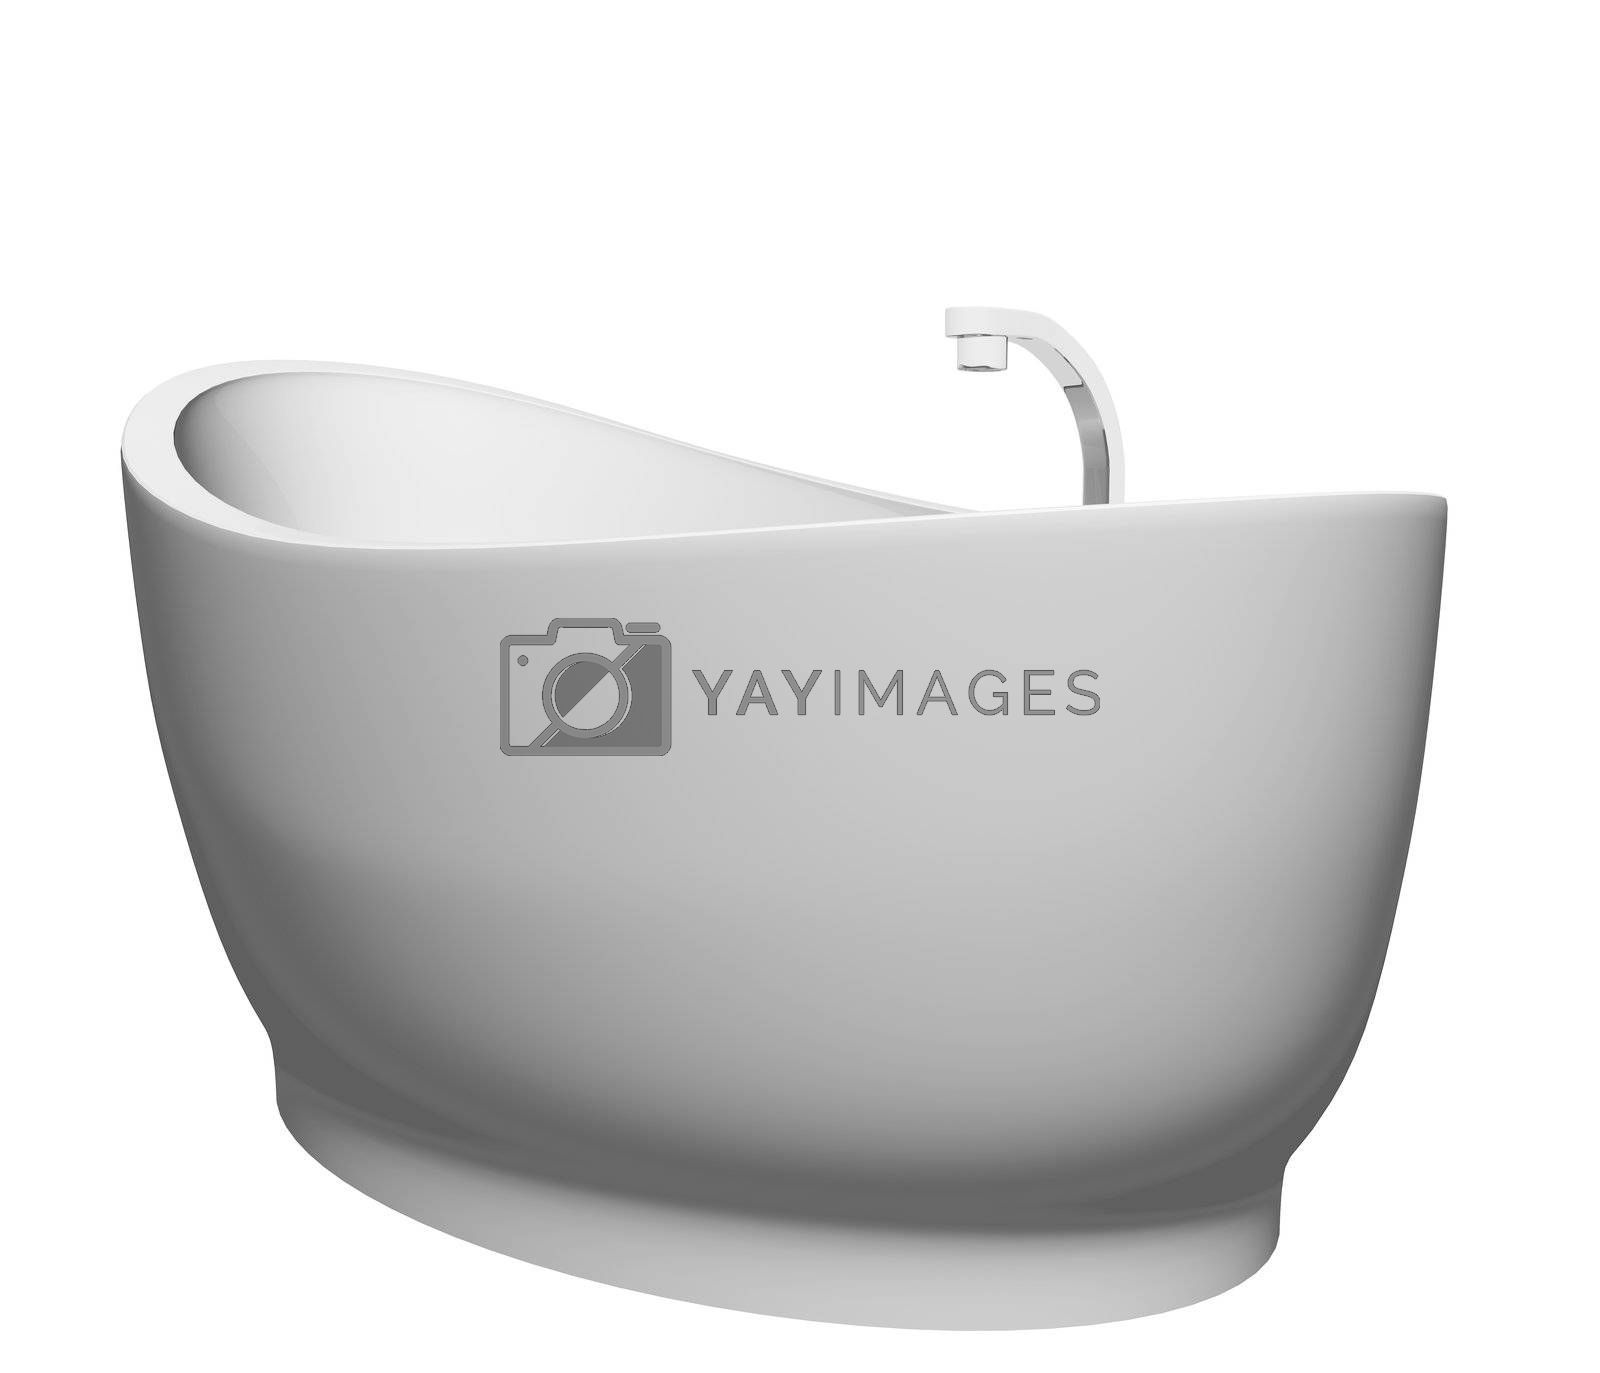 Pedestal modern white bathtub with stainless steel fixtures, isolated against a white background